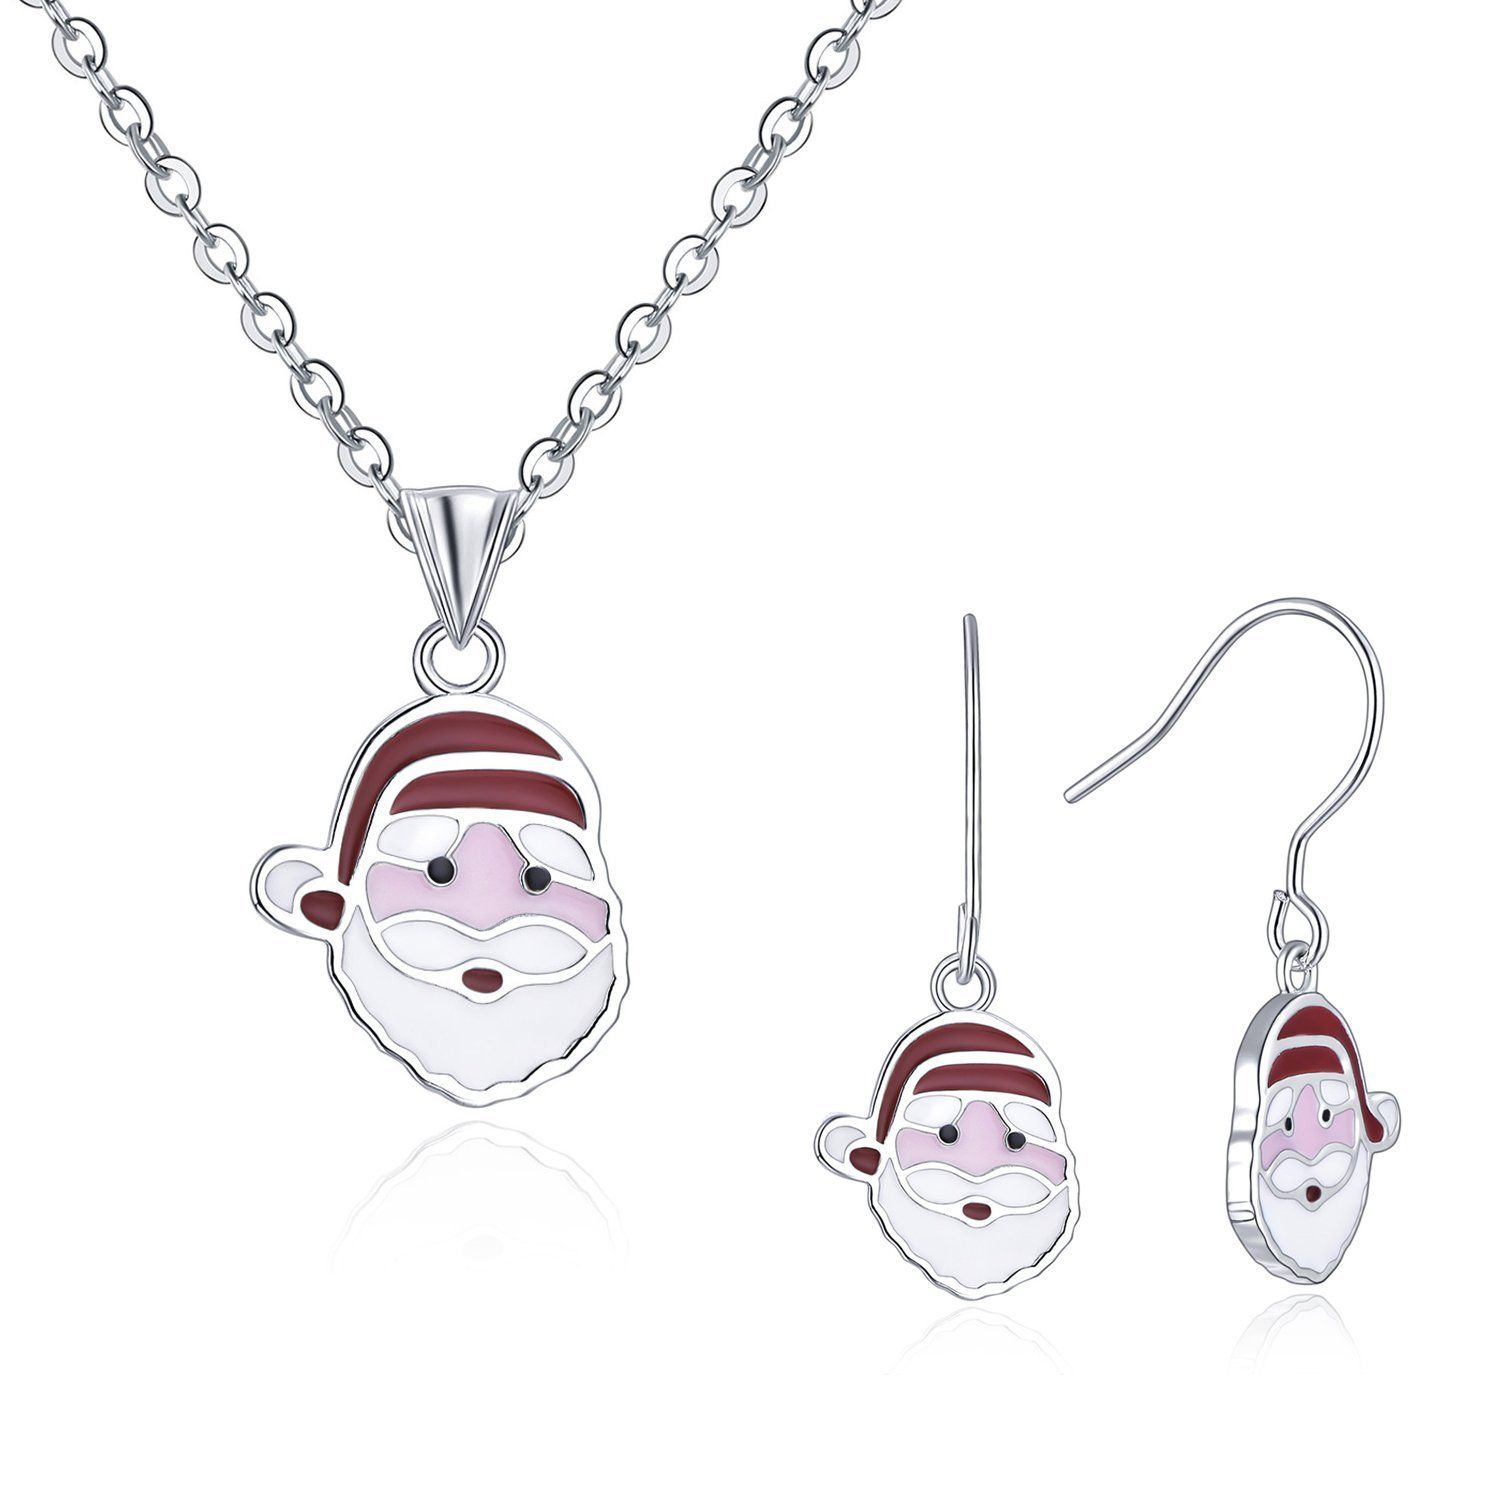 Yh jewelry ladies sterling silver enamel santa claus drop earrings